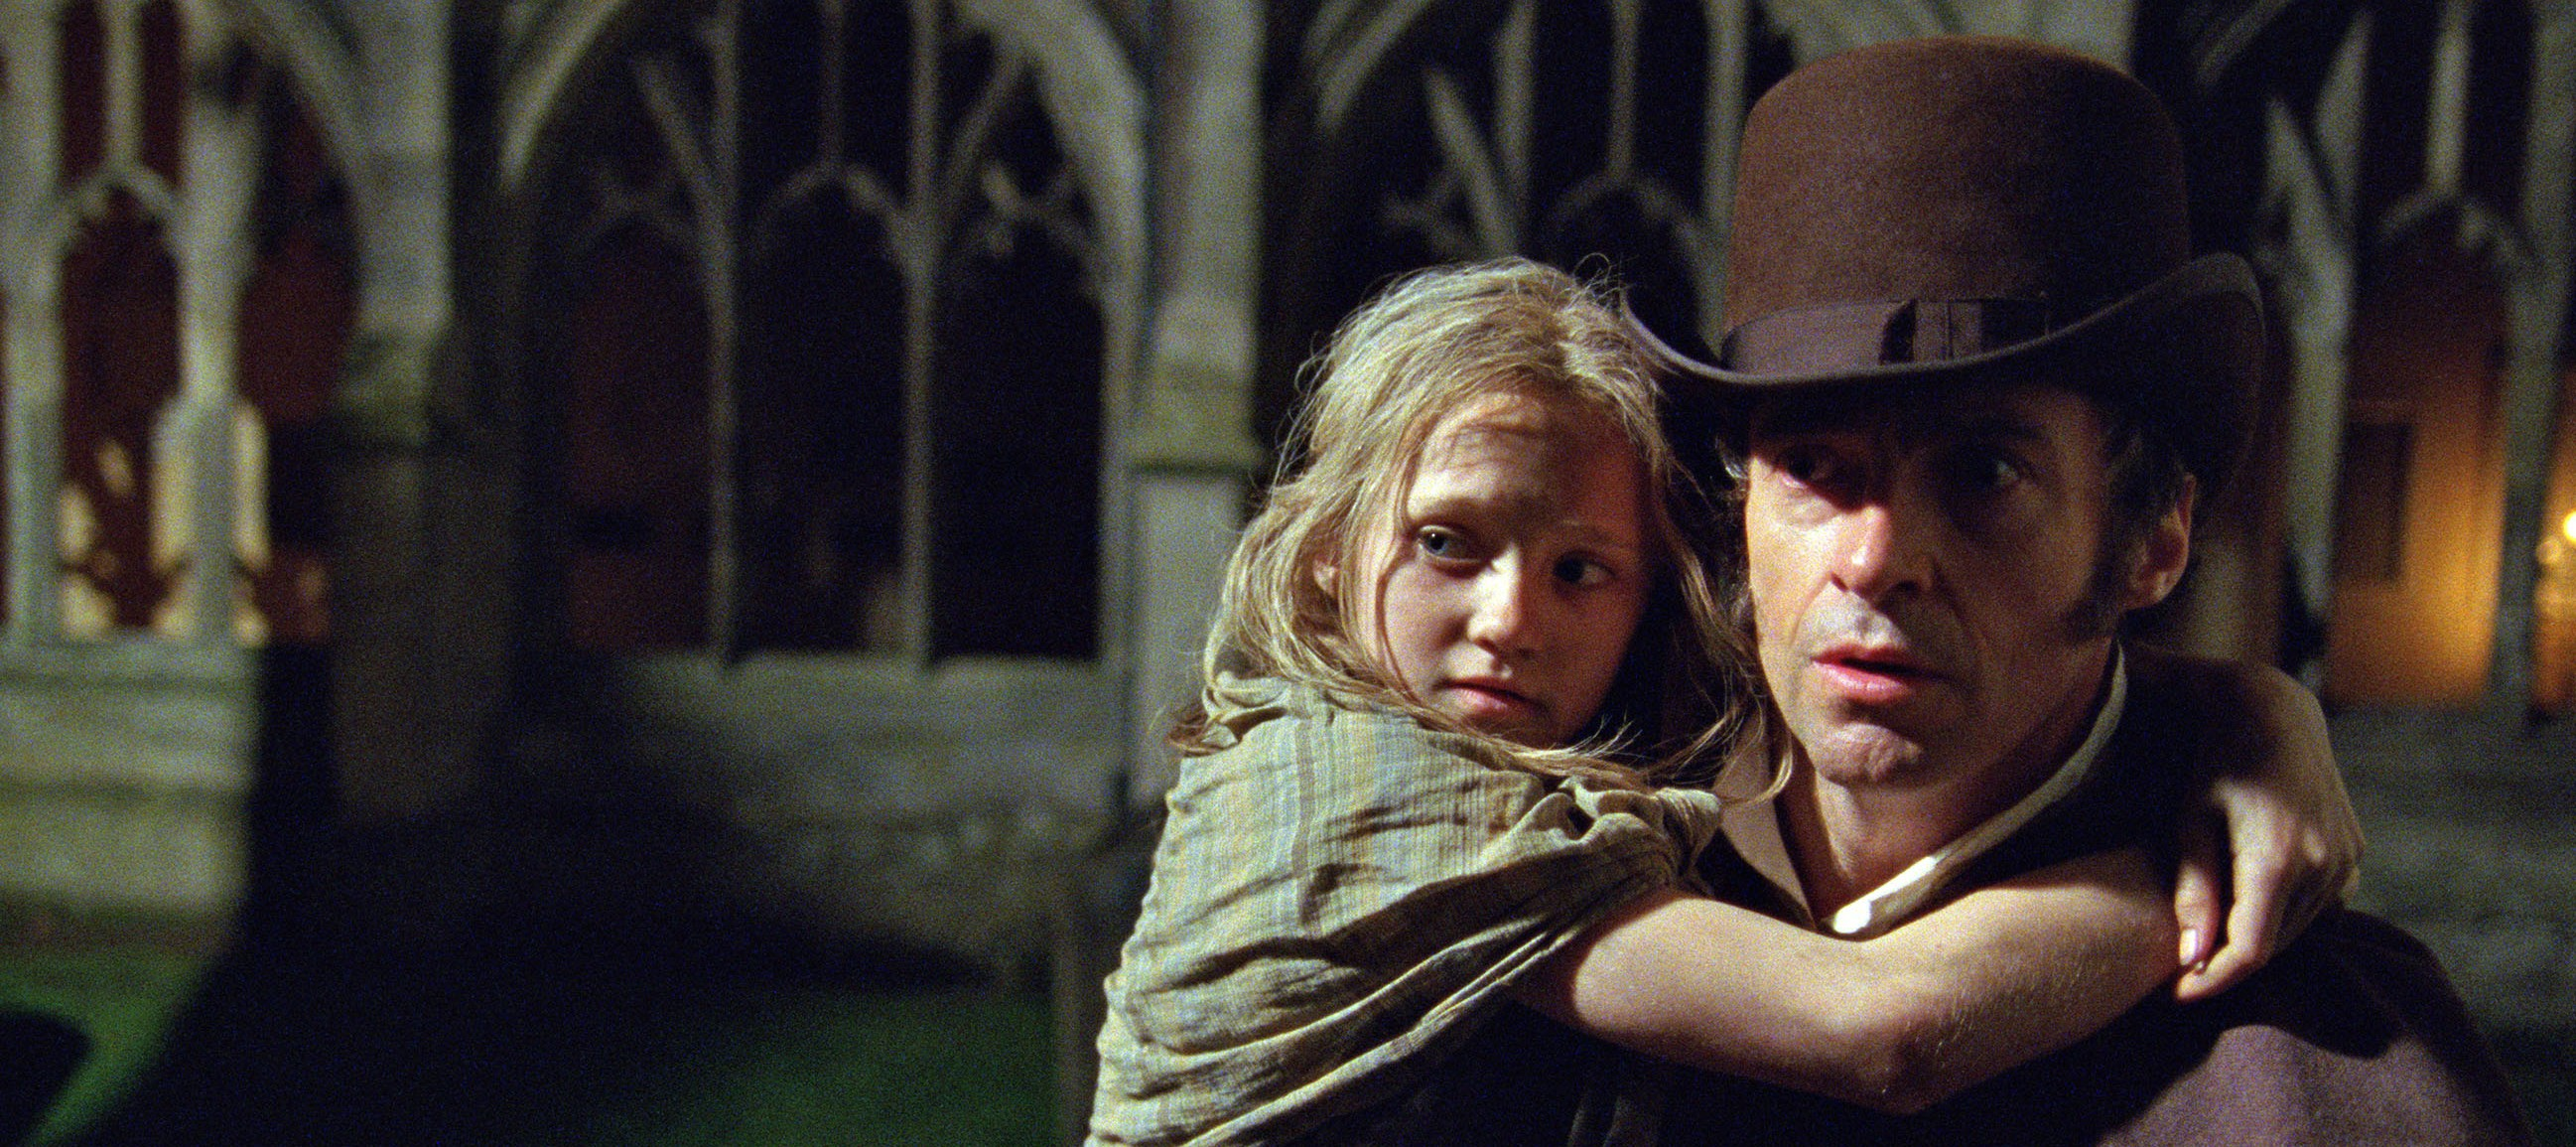 Les Miserables beats Django Unchained to stay No. 1 at UK box office